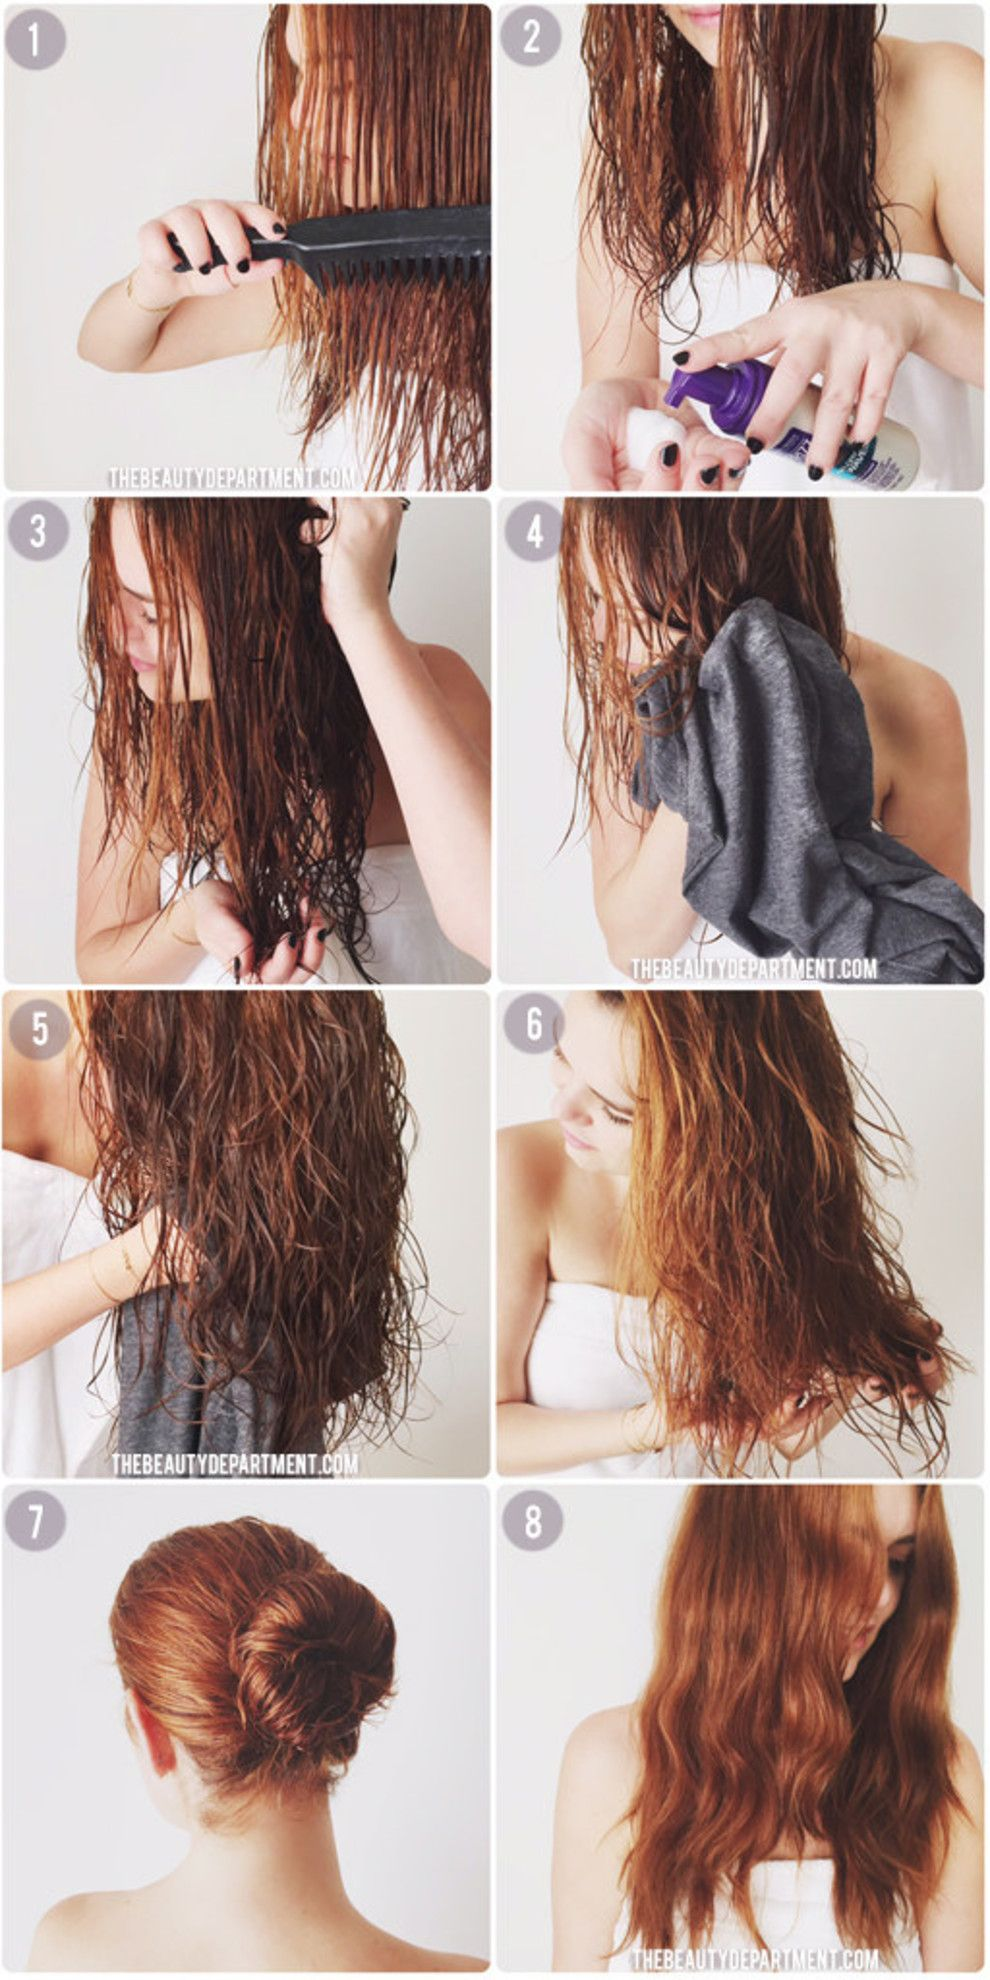 Don T Leave How Your Hair Dries Up In The Air If You Re Letting Your Hair Dry Au Natural You Can Detangle With A Wide Tooth Comb Apply John Frieda S Air Dr Air